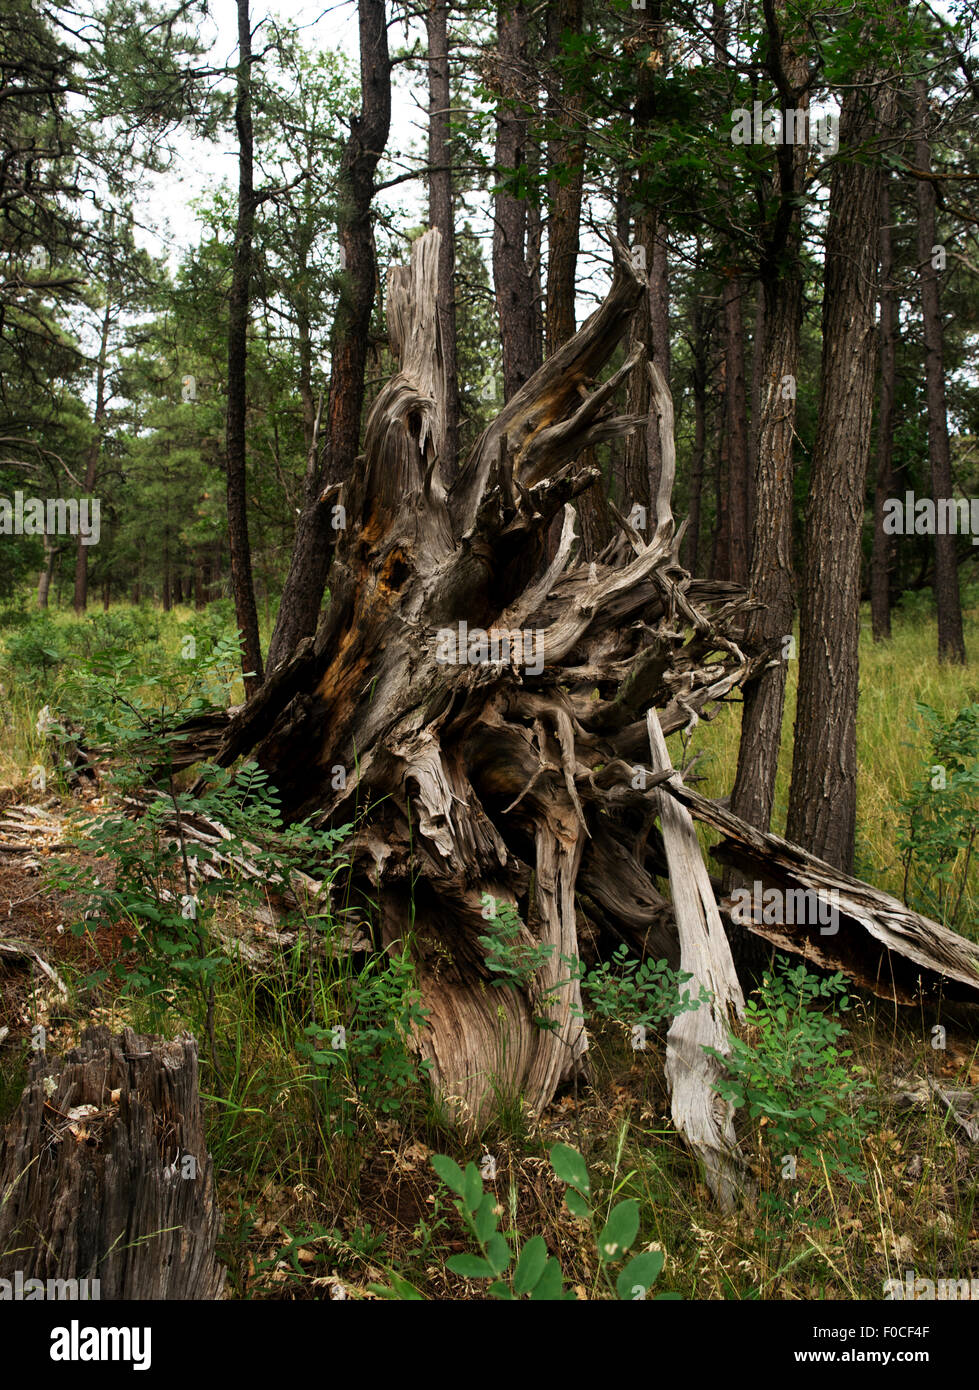 Pine tree roots, Coconino forest - Stock Image